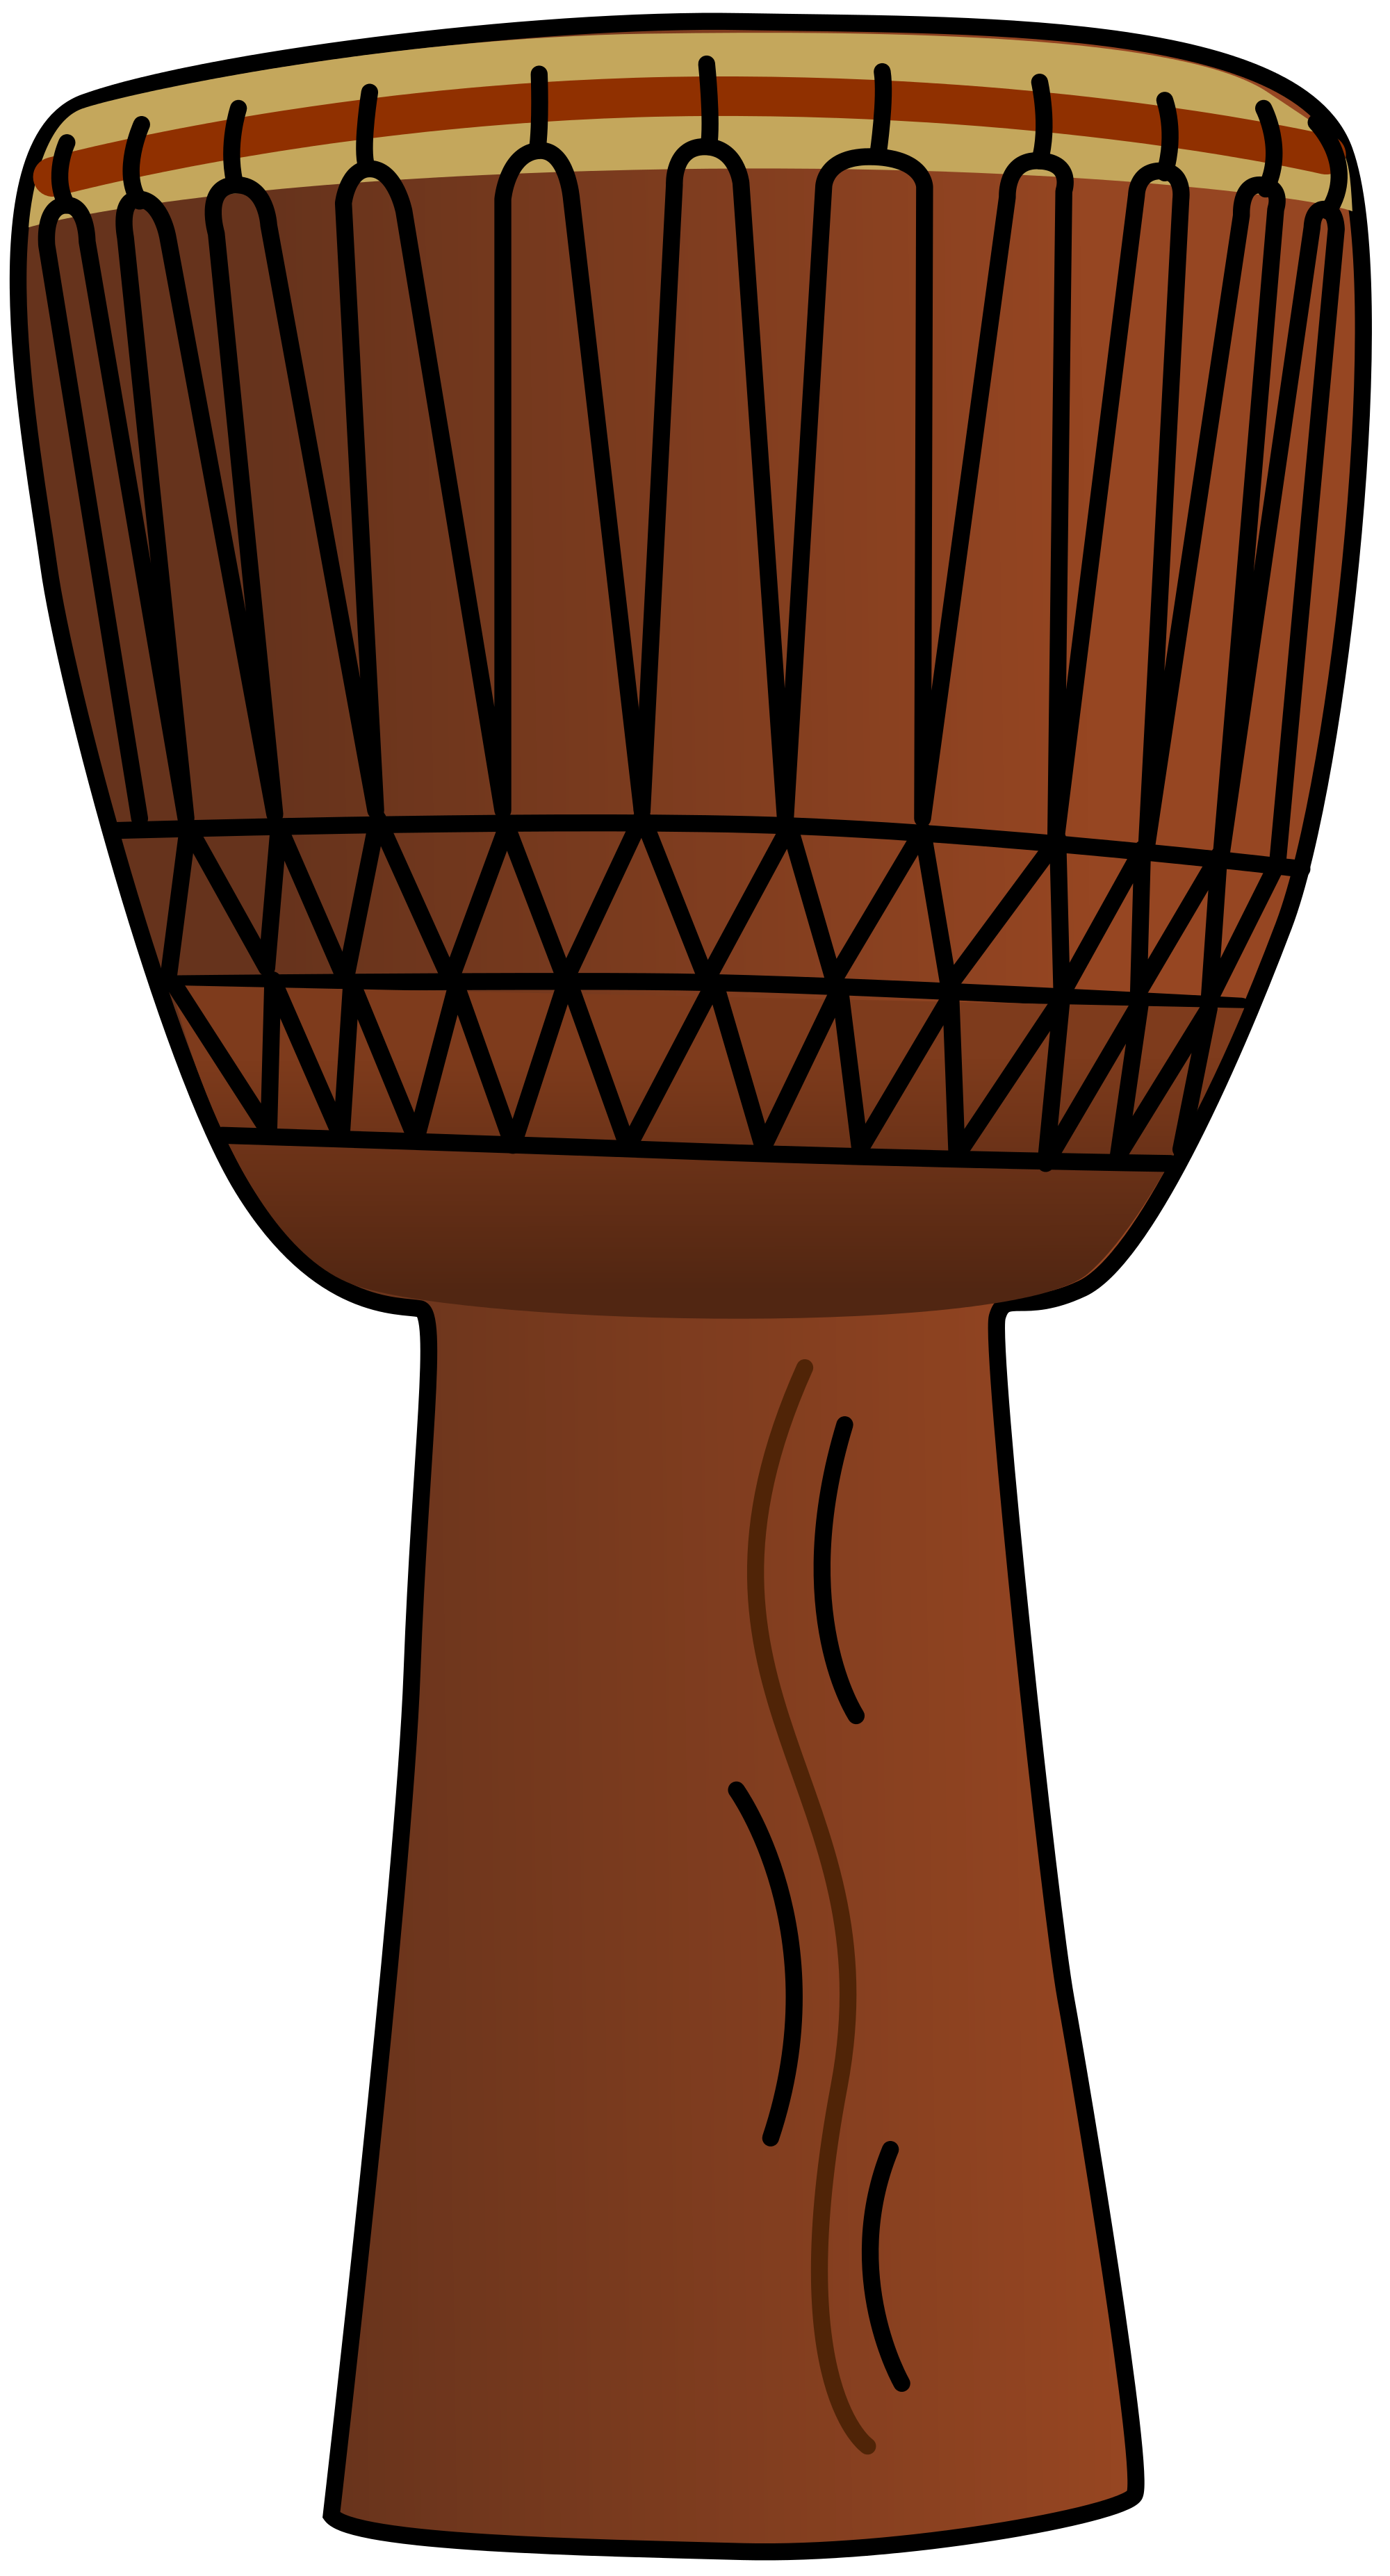 Hands clipart drumming. File african drum svg